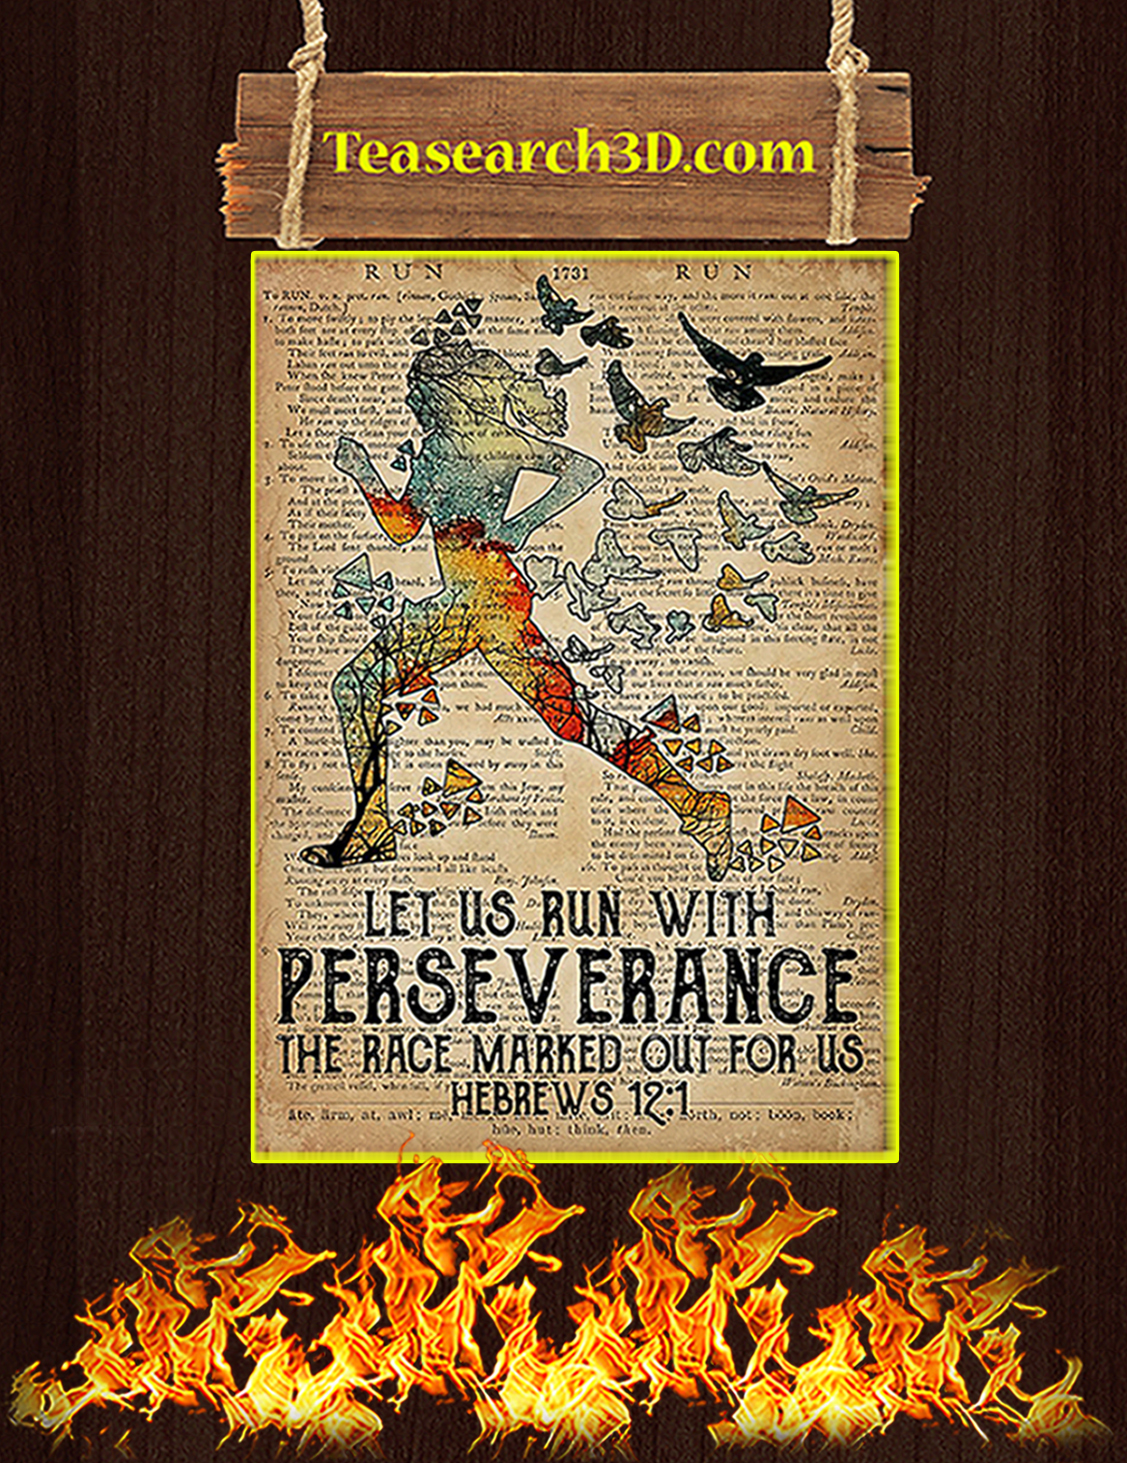 Running let us run with perseverance poster A3